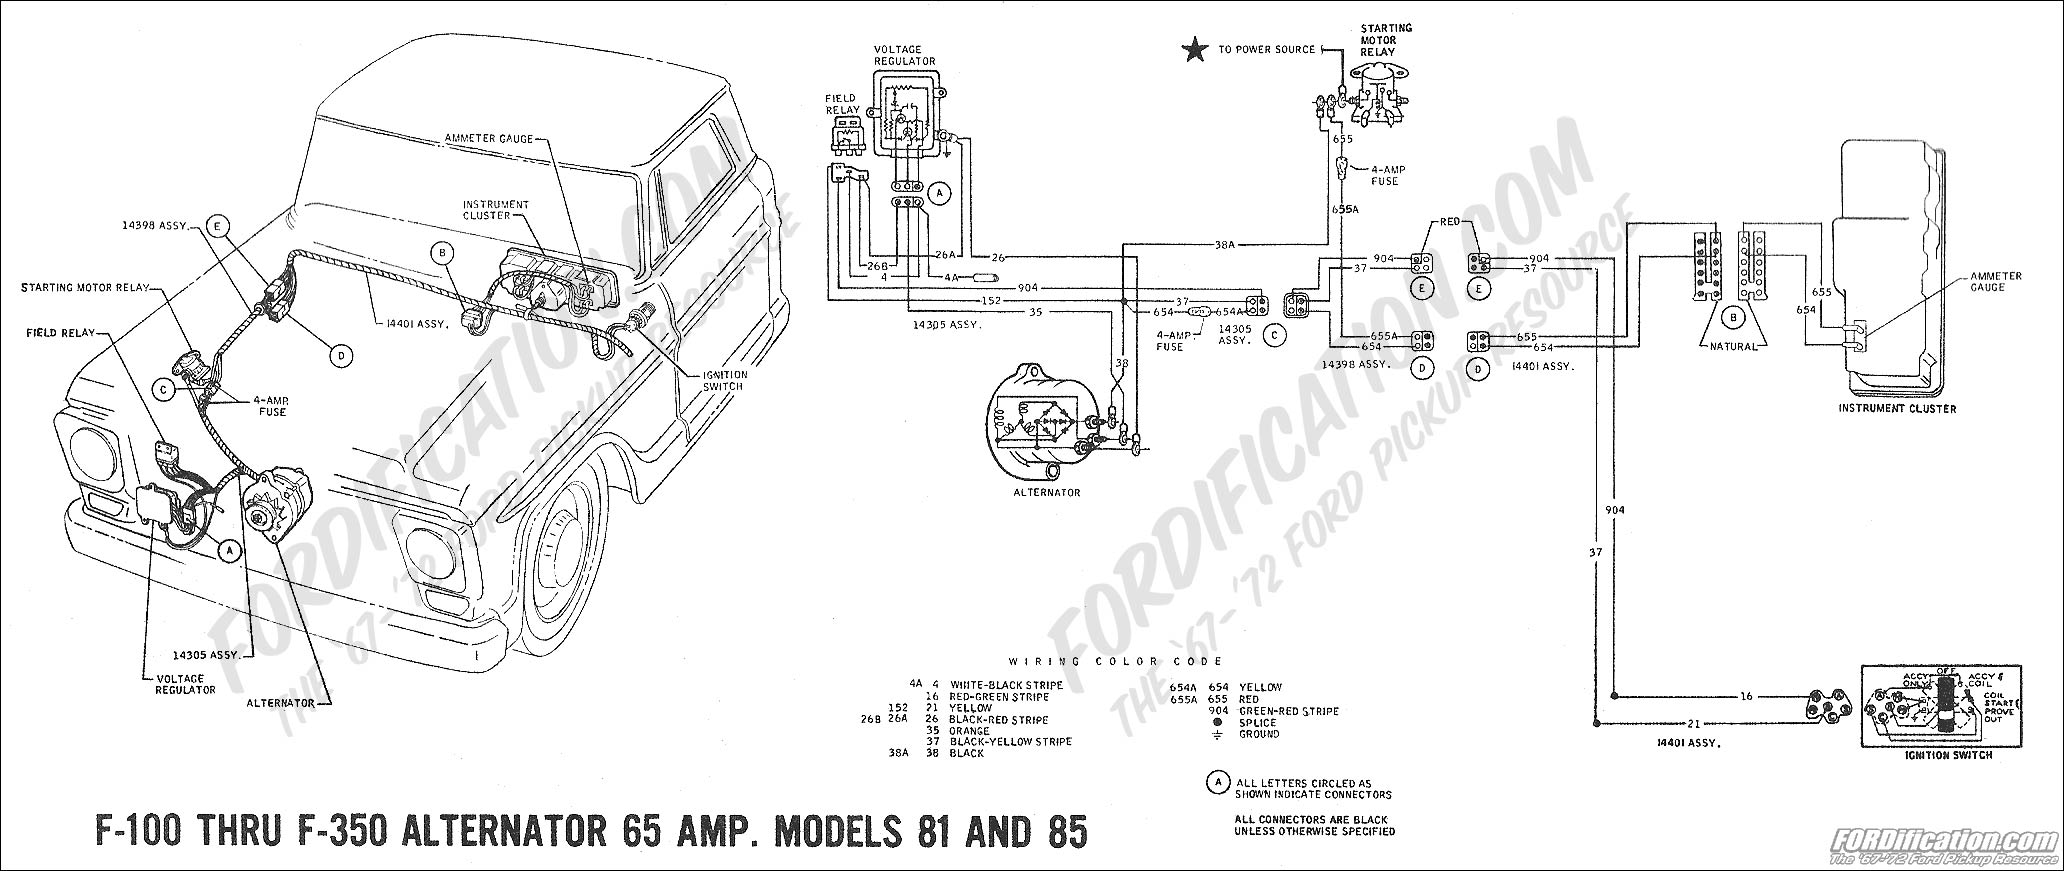 84 Ford F250 Ignition Wiring Diagram on 1986 Ford F 250 Wiring Diagram